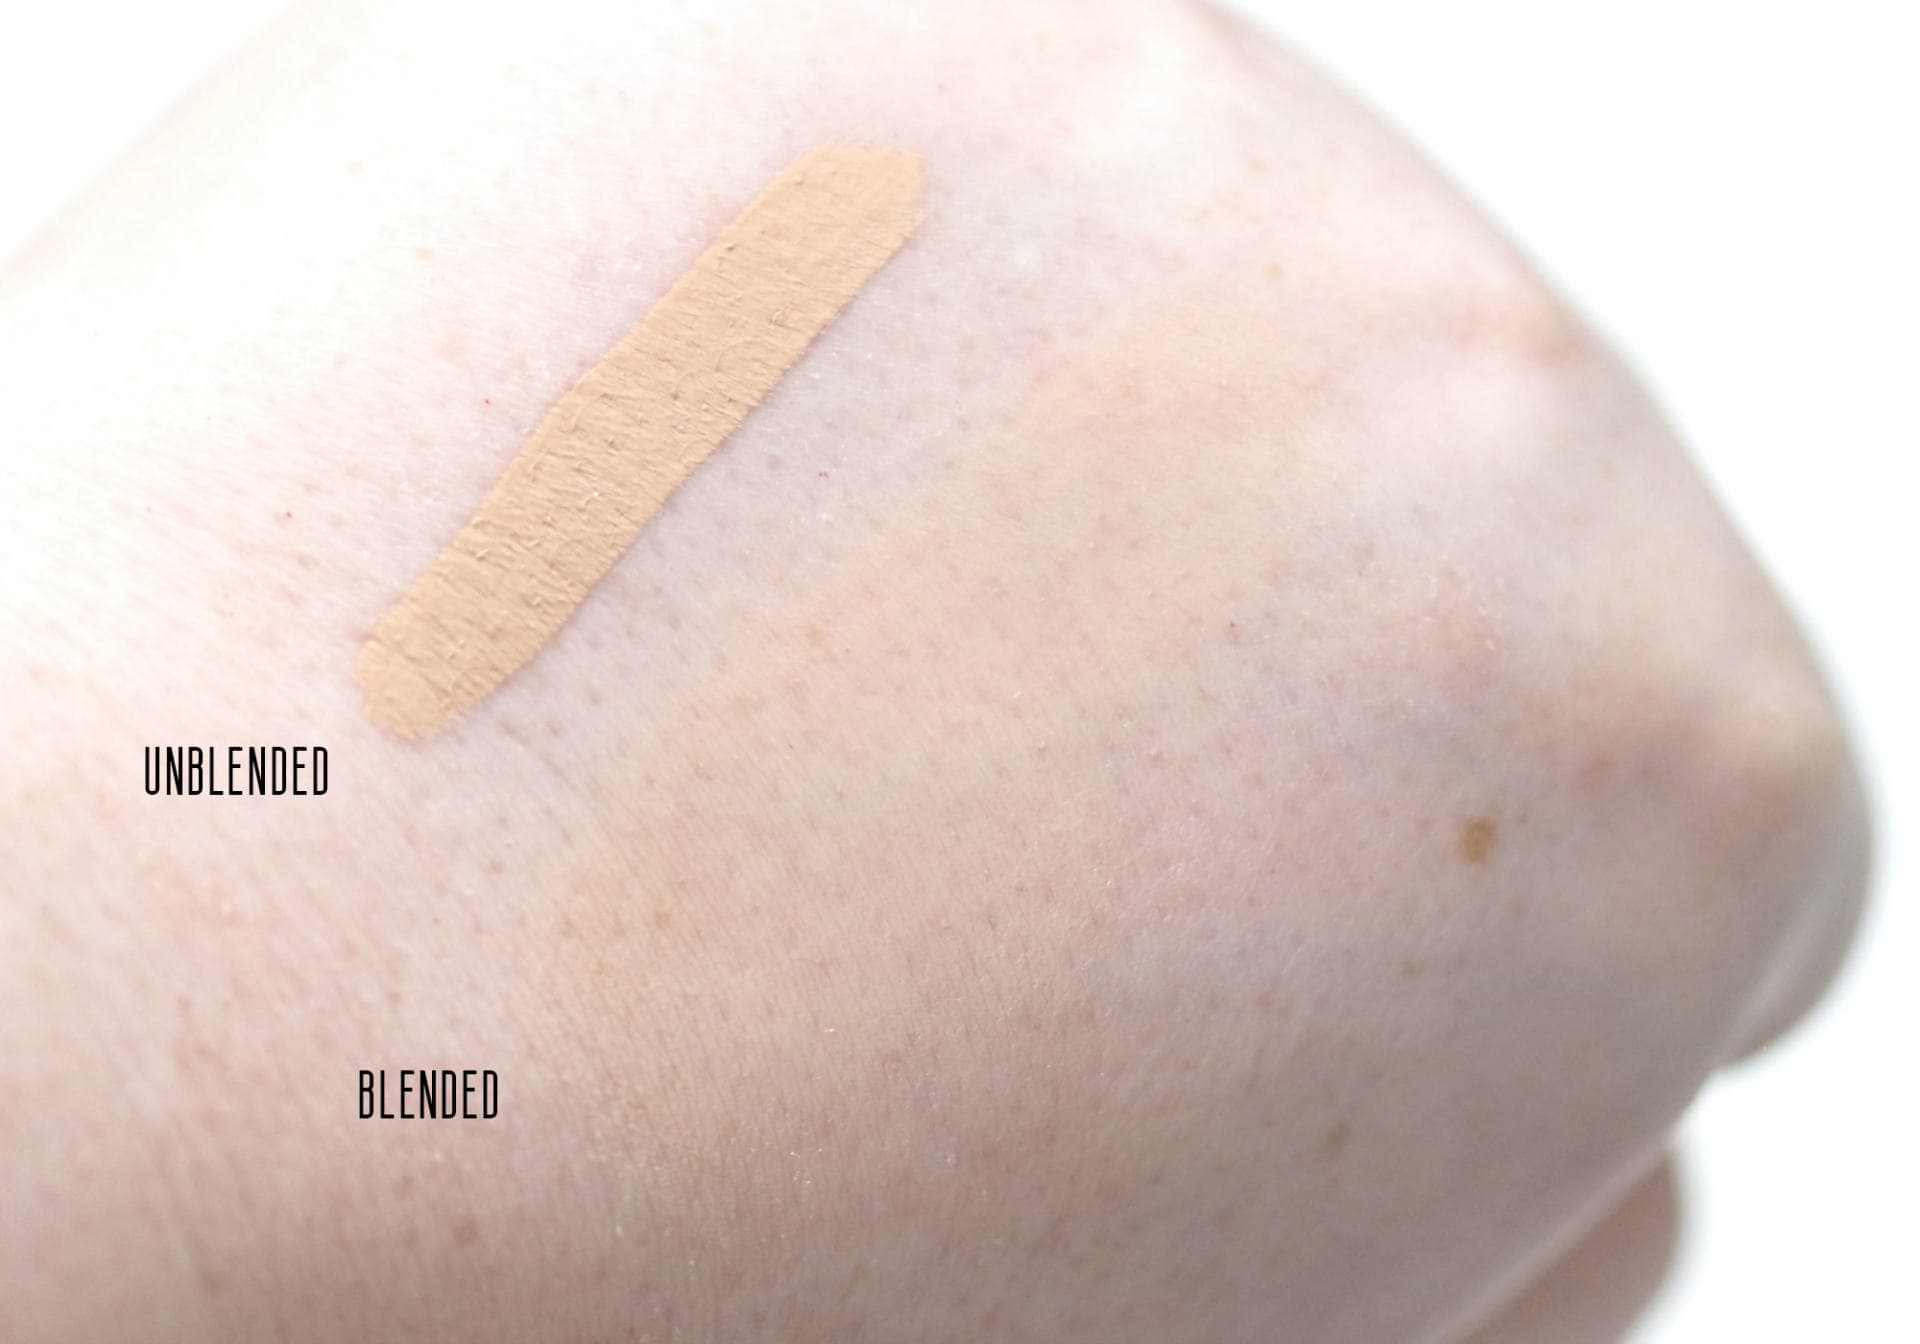 Revlon Candid Foundation, Concealer and Powder | Review and Swatches